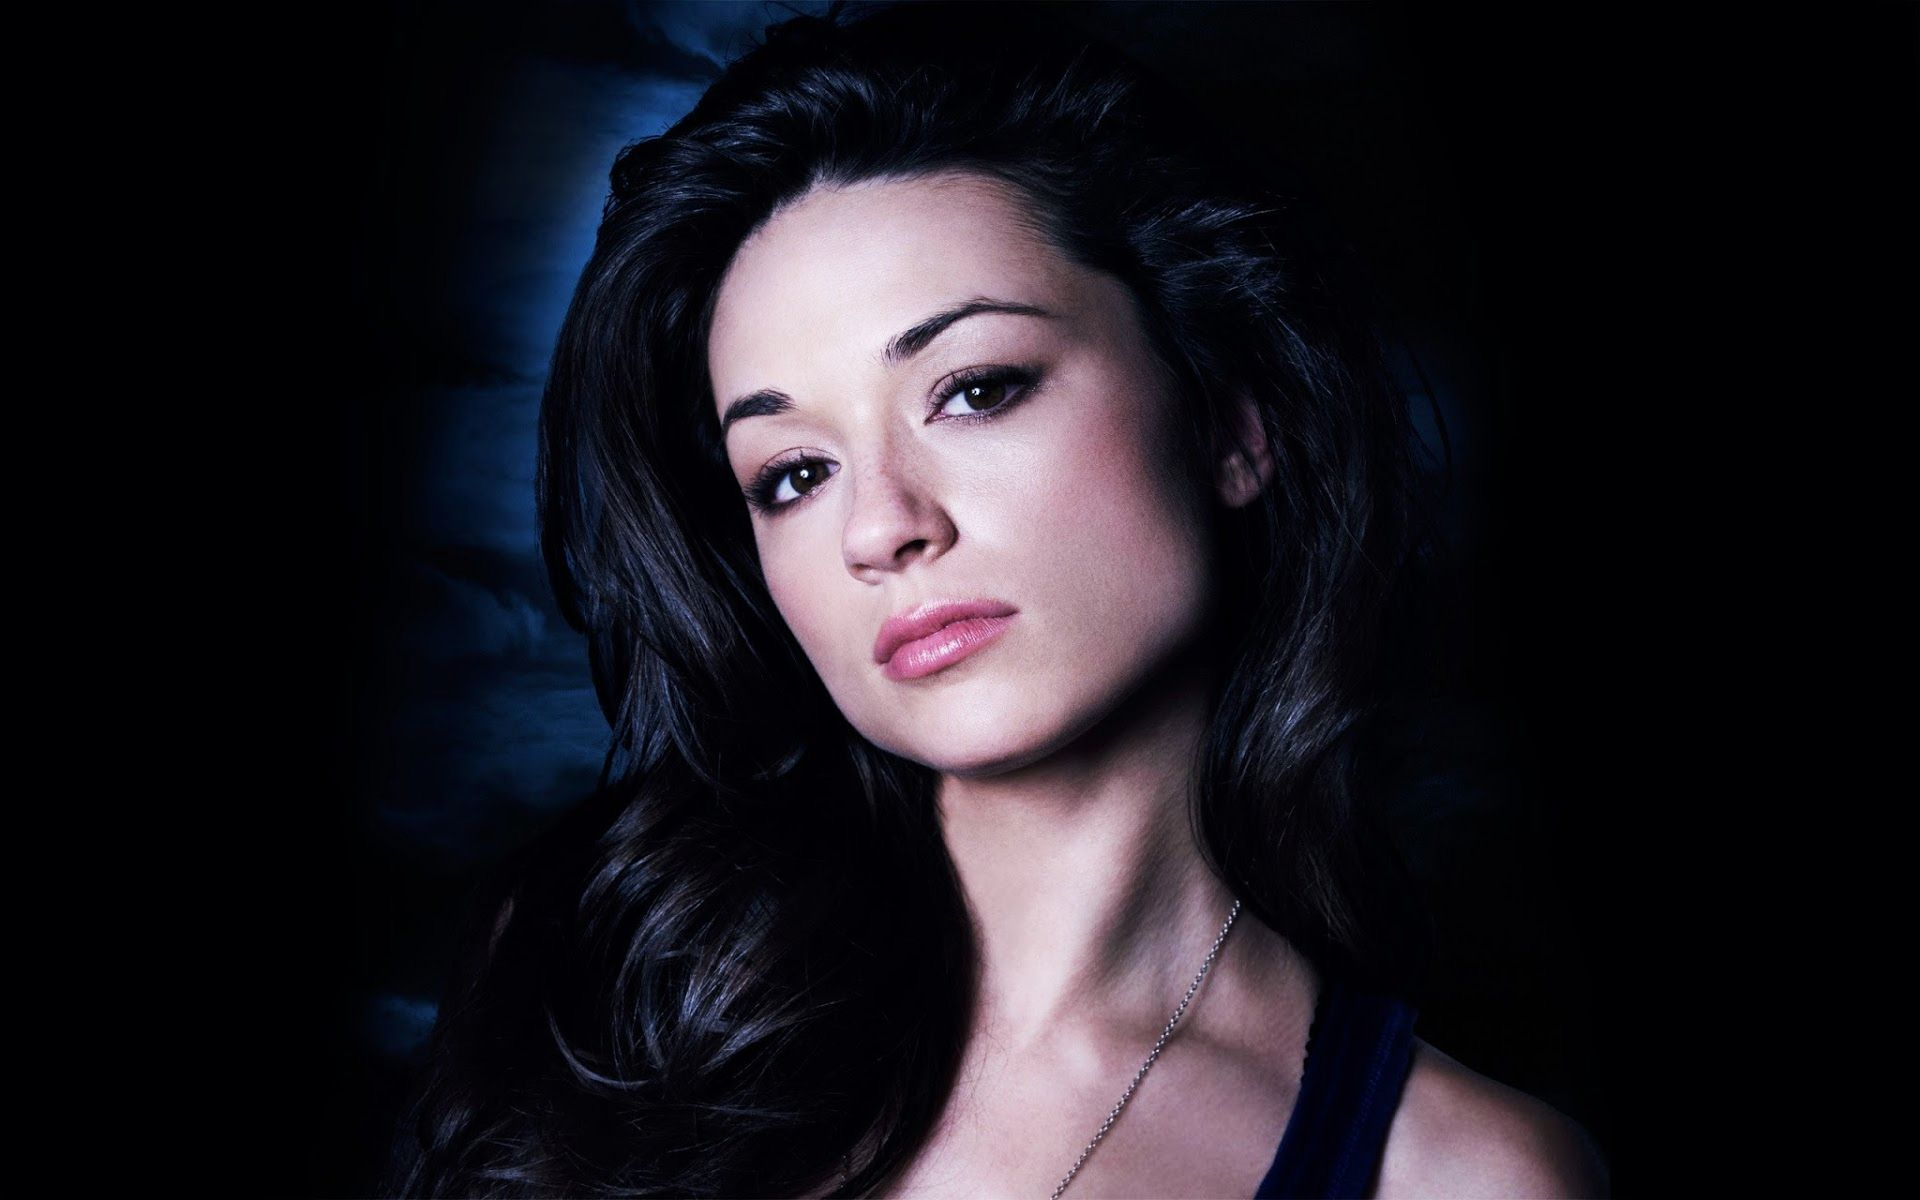 1920x1200 - Crystal Reed Wallpapers 3